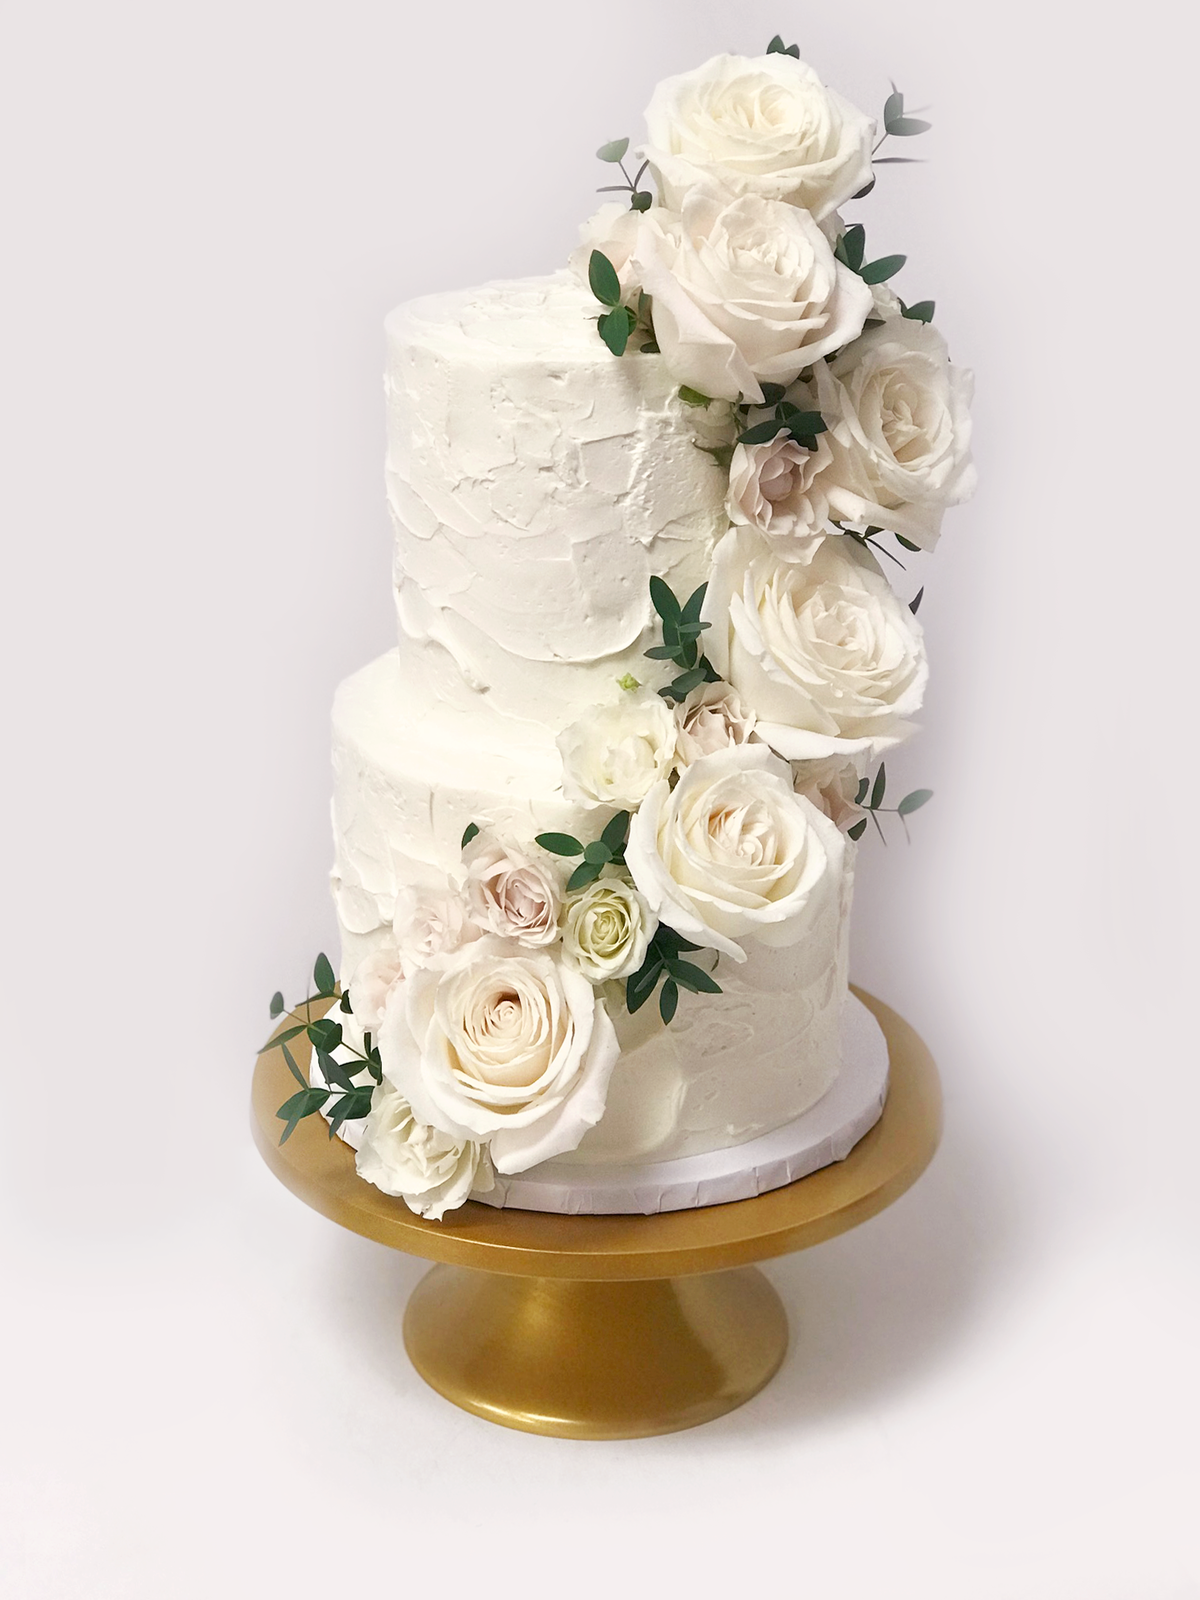 Whippt Wedding cake - Aug 2018 Julianne Young, Magnolia banquet, fleurish